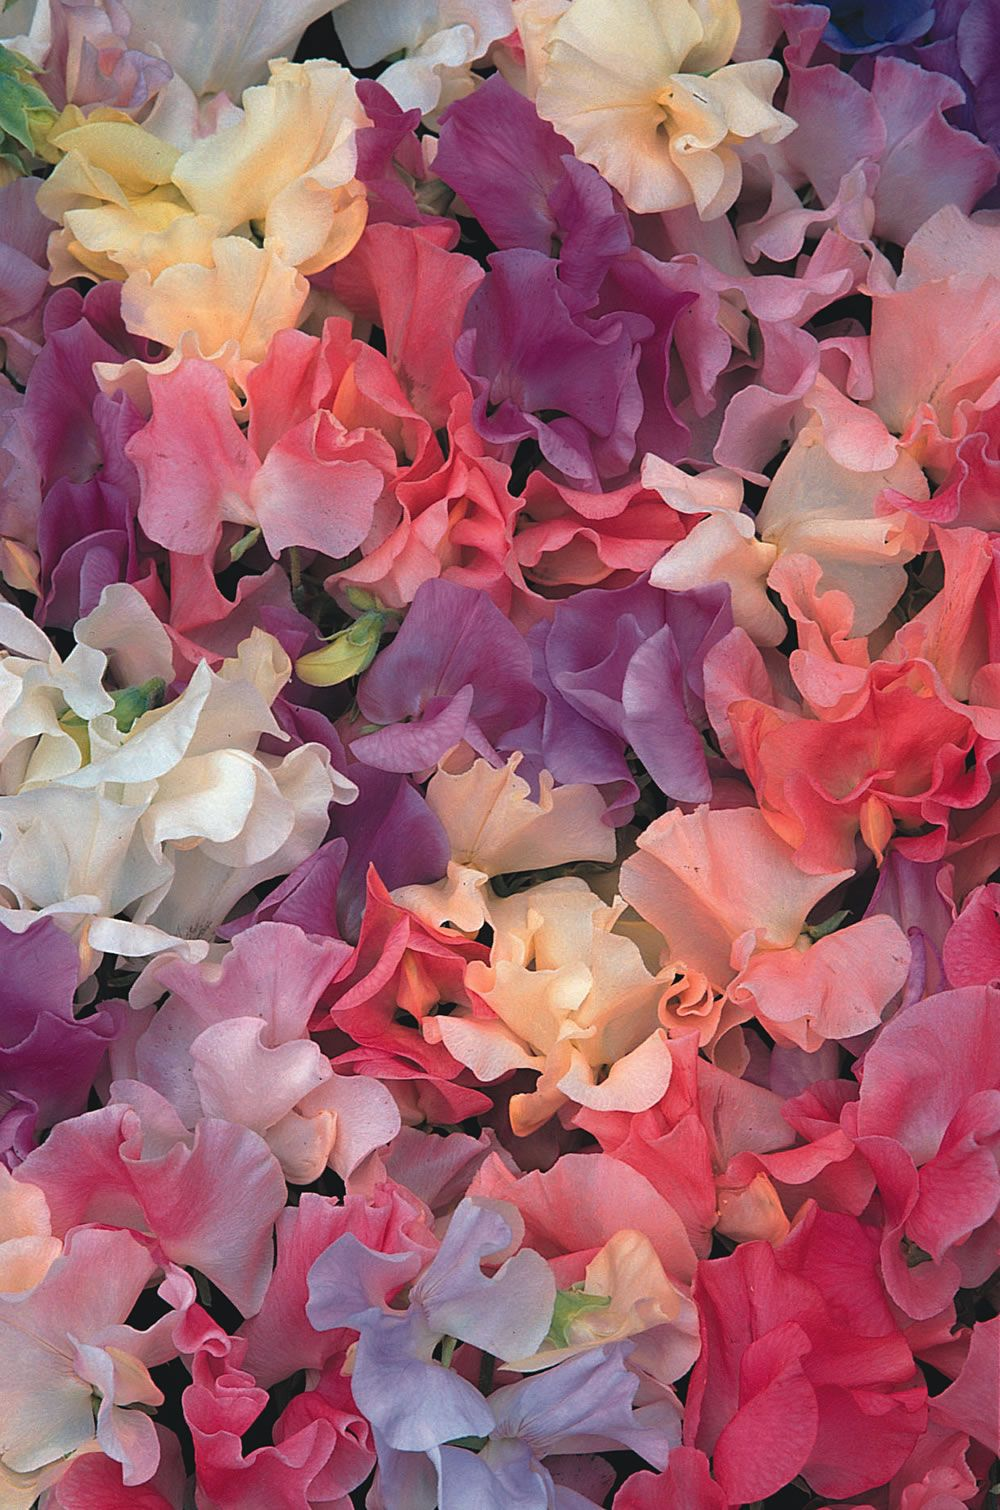 Sweet Peas are fragrant uPastel Sunsetu is a sweetly scented pastel